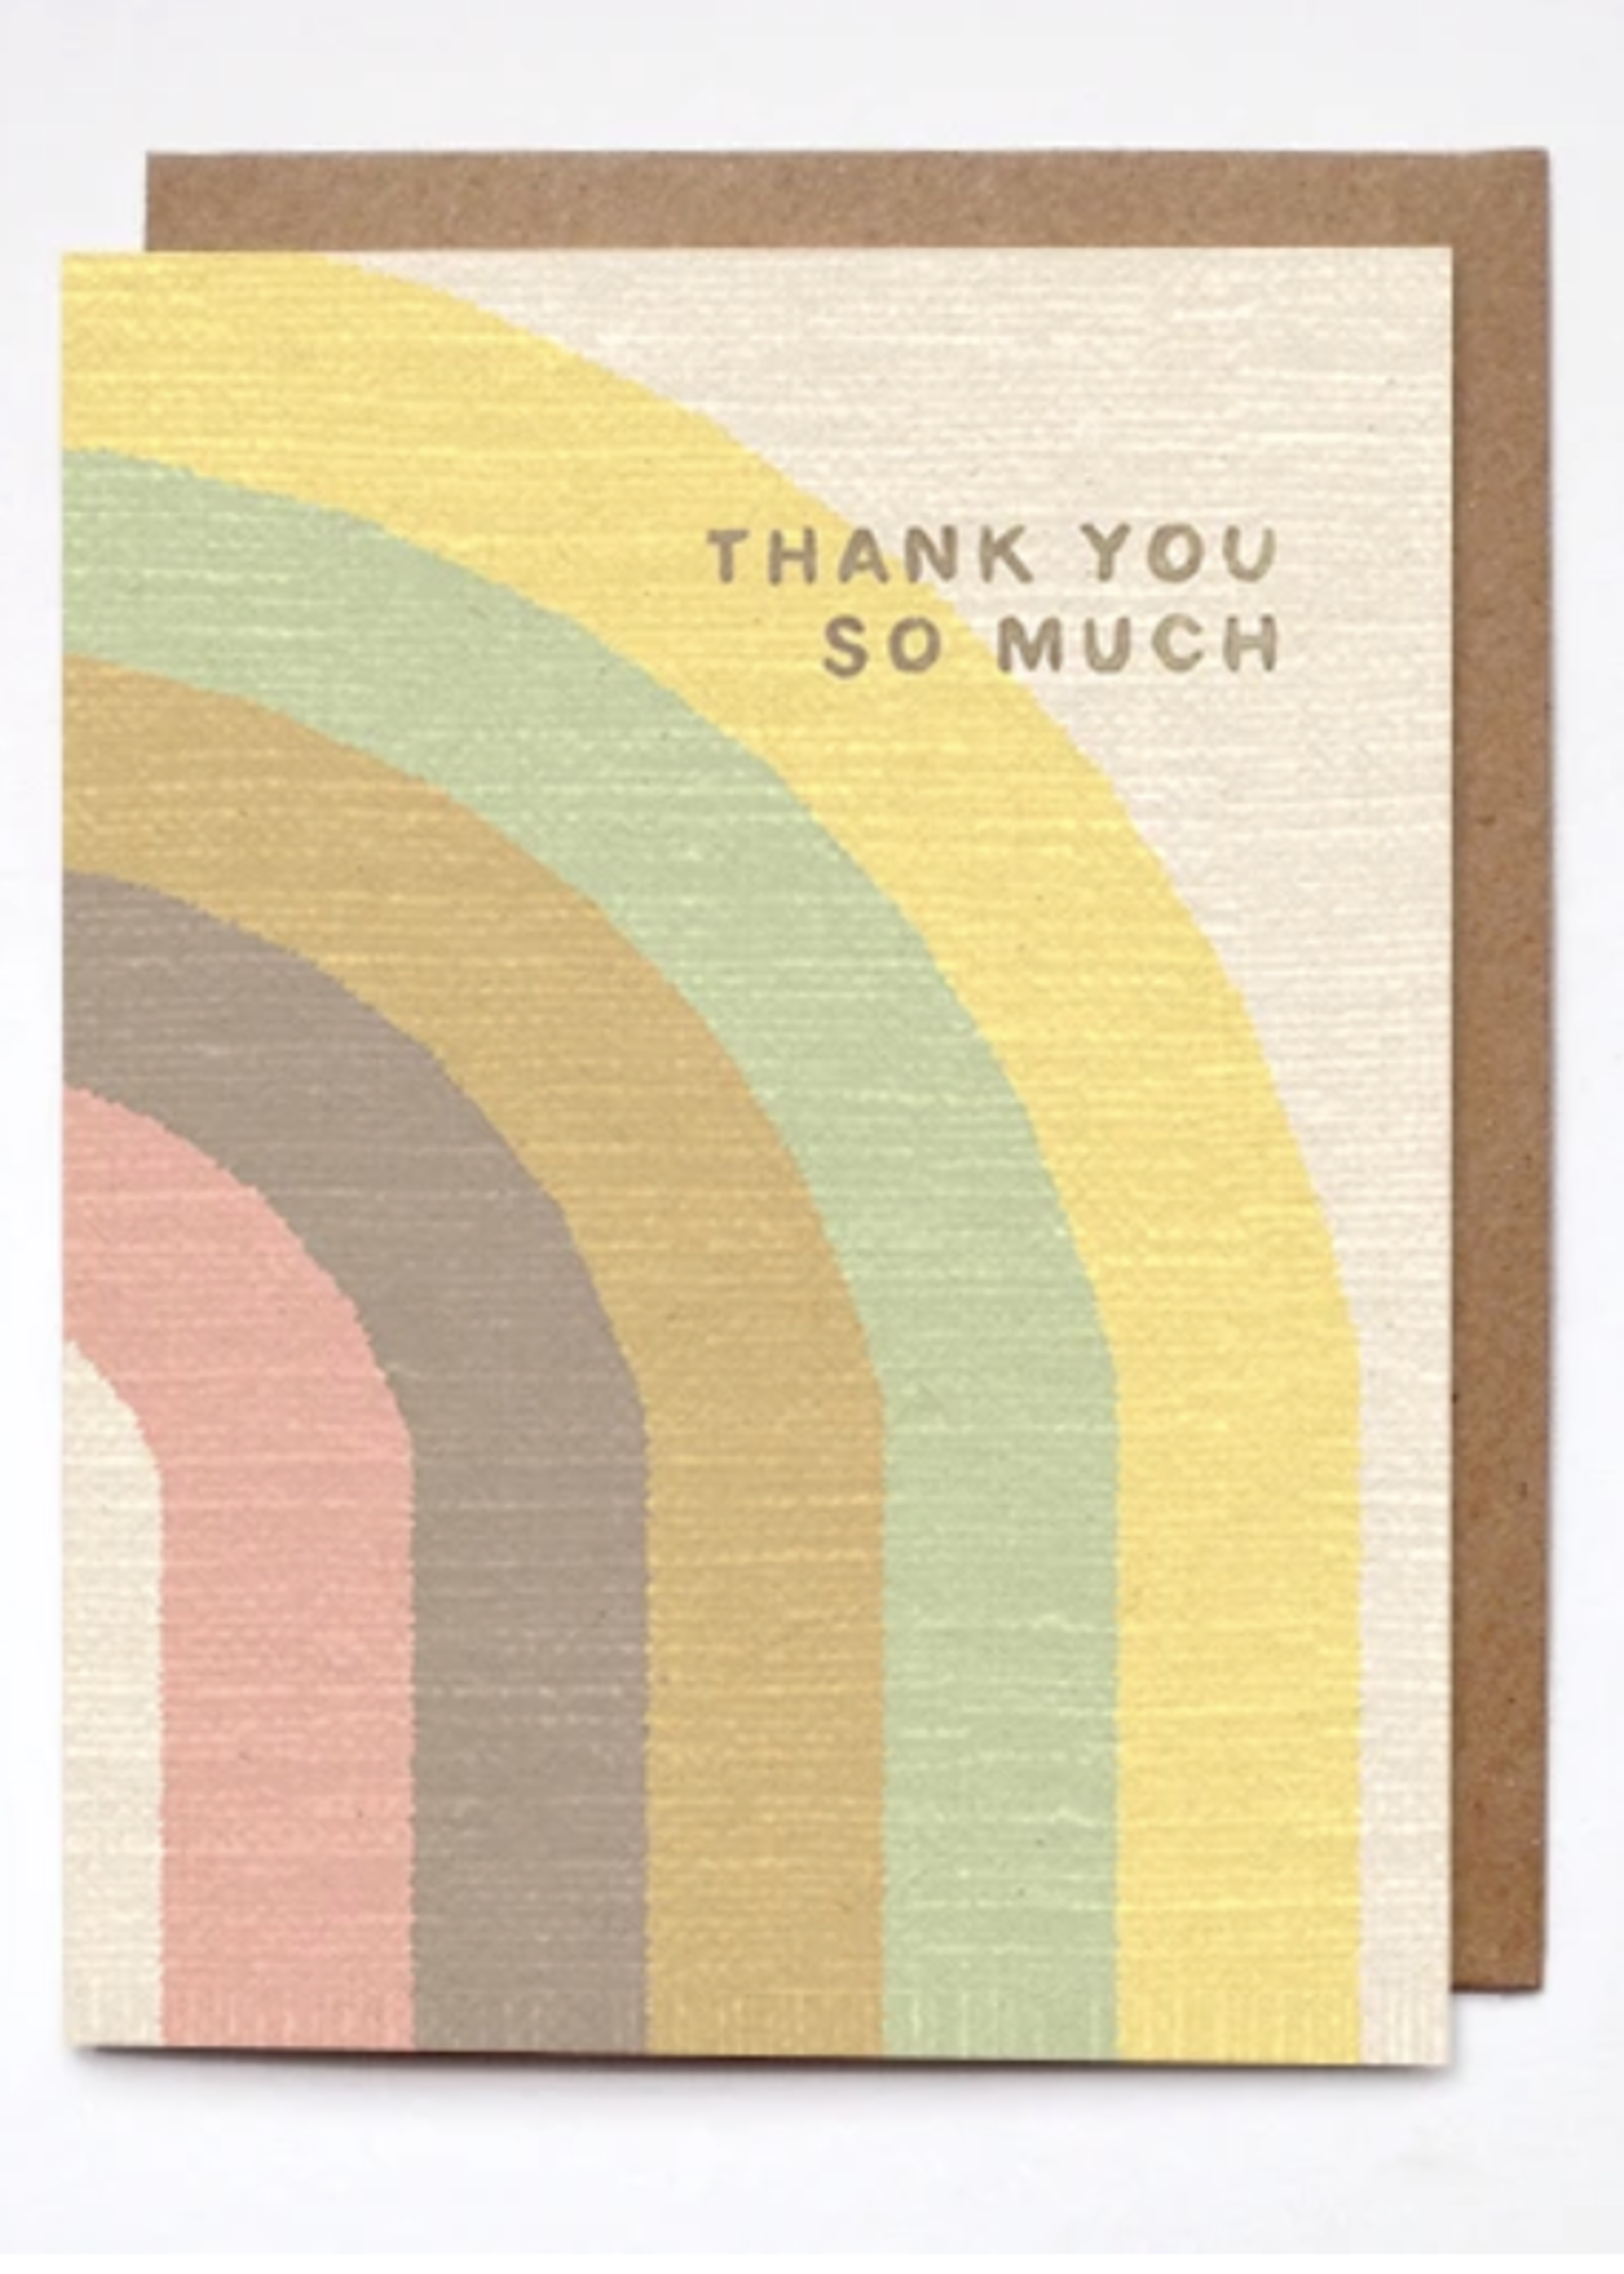 daydream prints thank you so much card